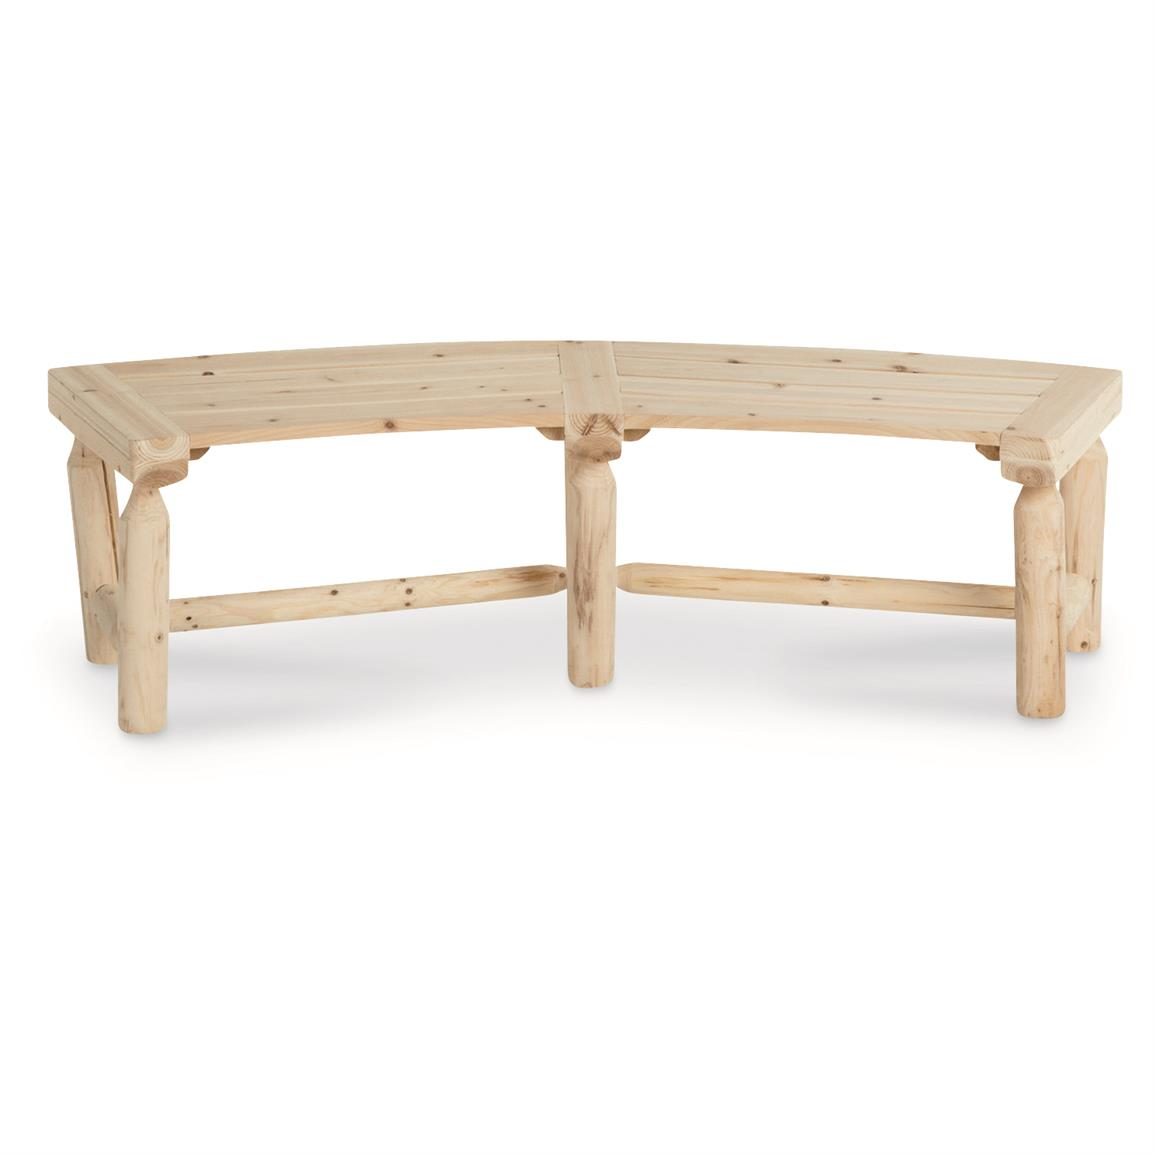 CASTLECREEK Log Fire Pit Bench